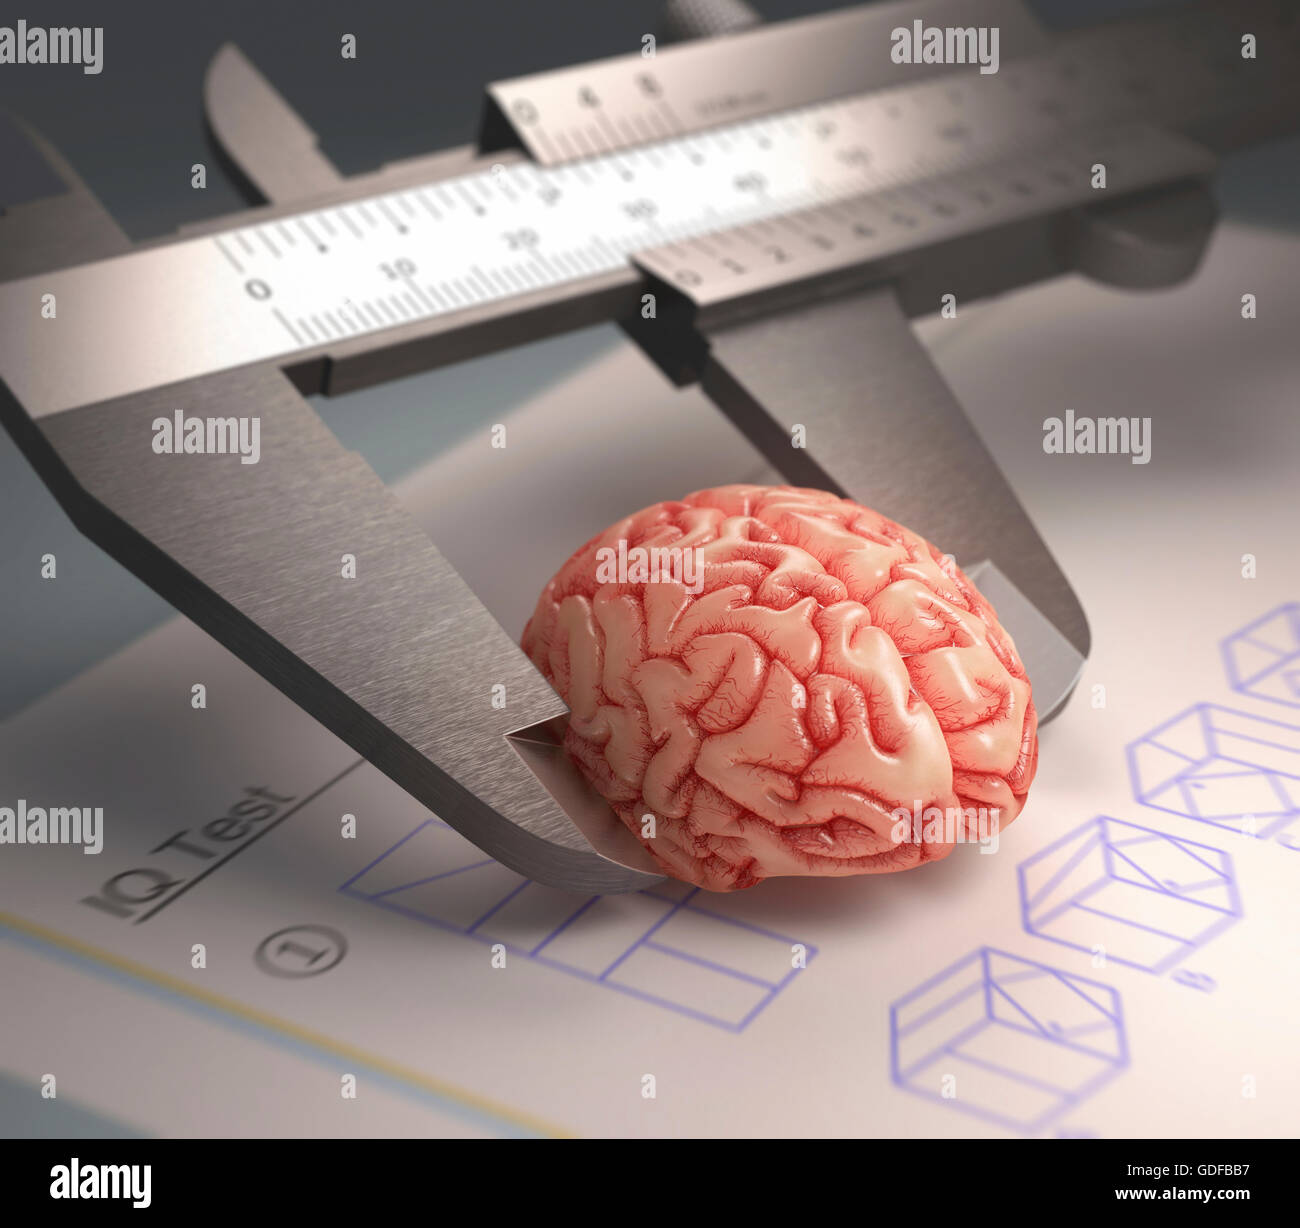 Calliper ruler measuring human brain, illustration. - Stock Image